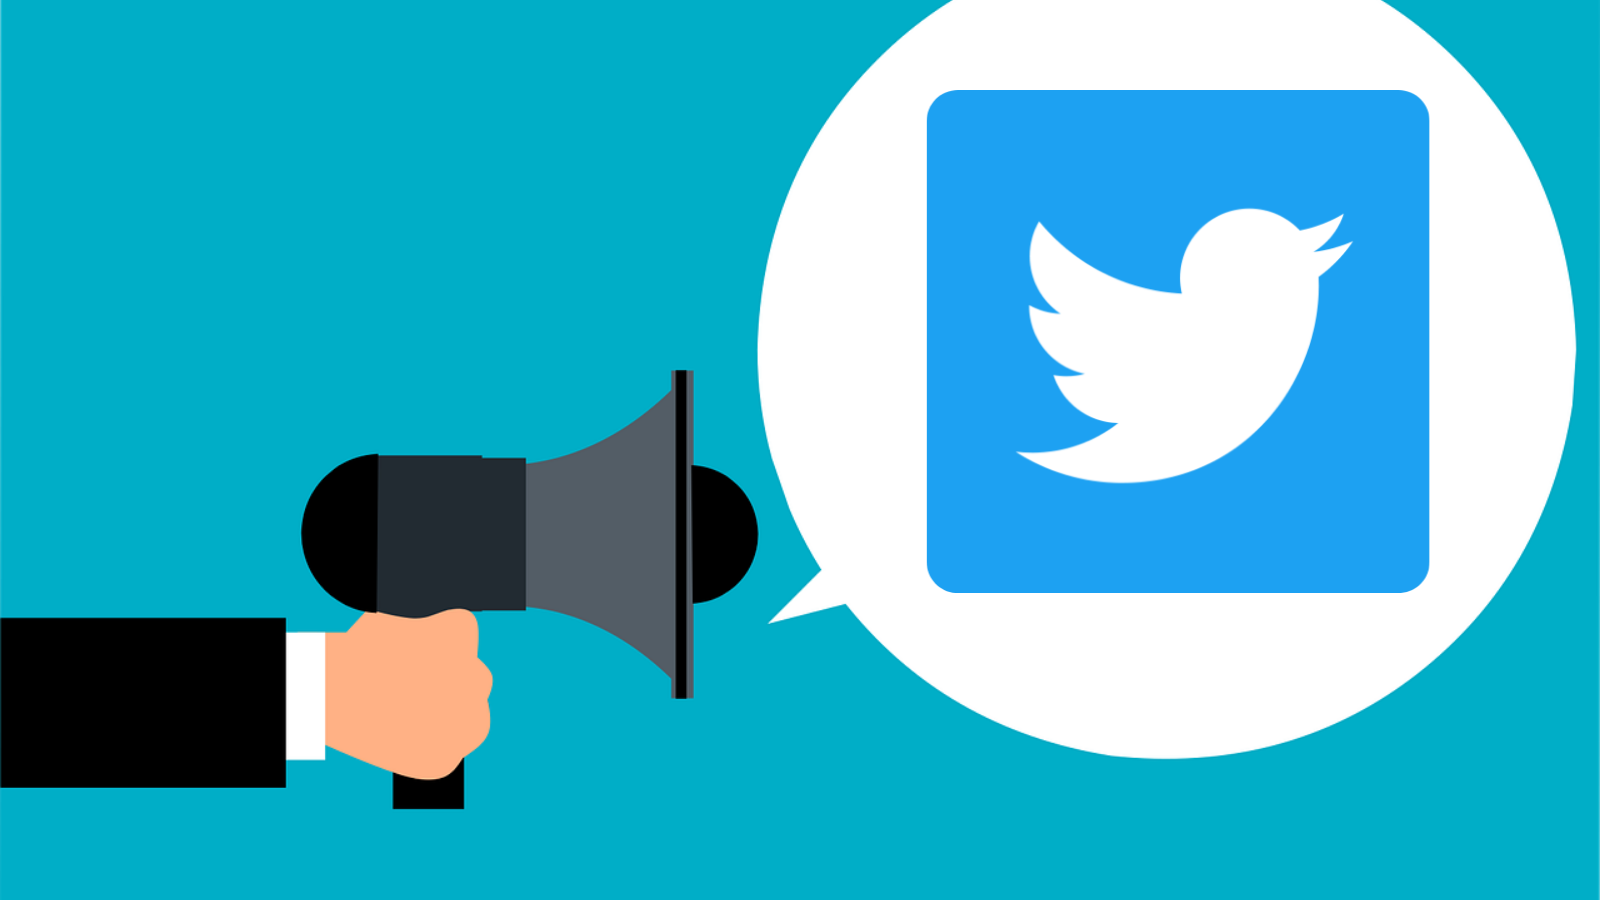 Twitter finally ads closed captions to its voice tweets feature » Stuff - Stuff Magazines